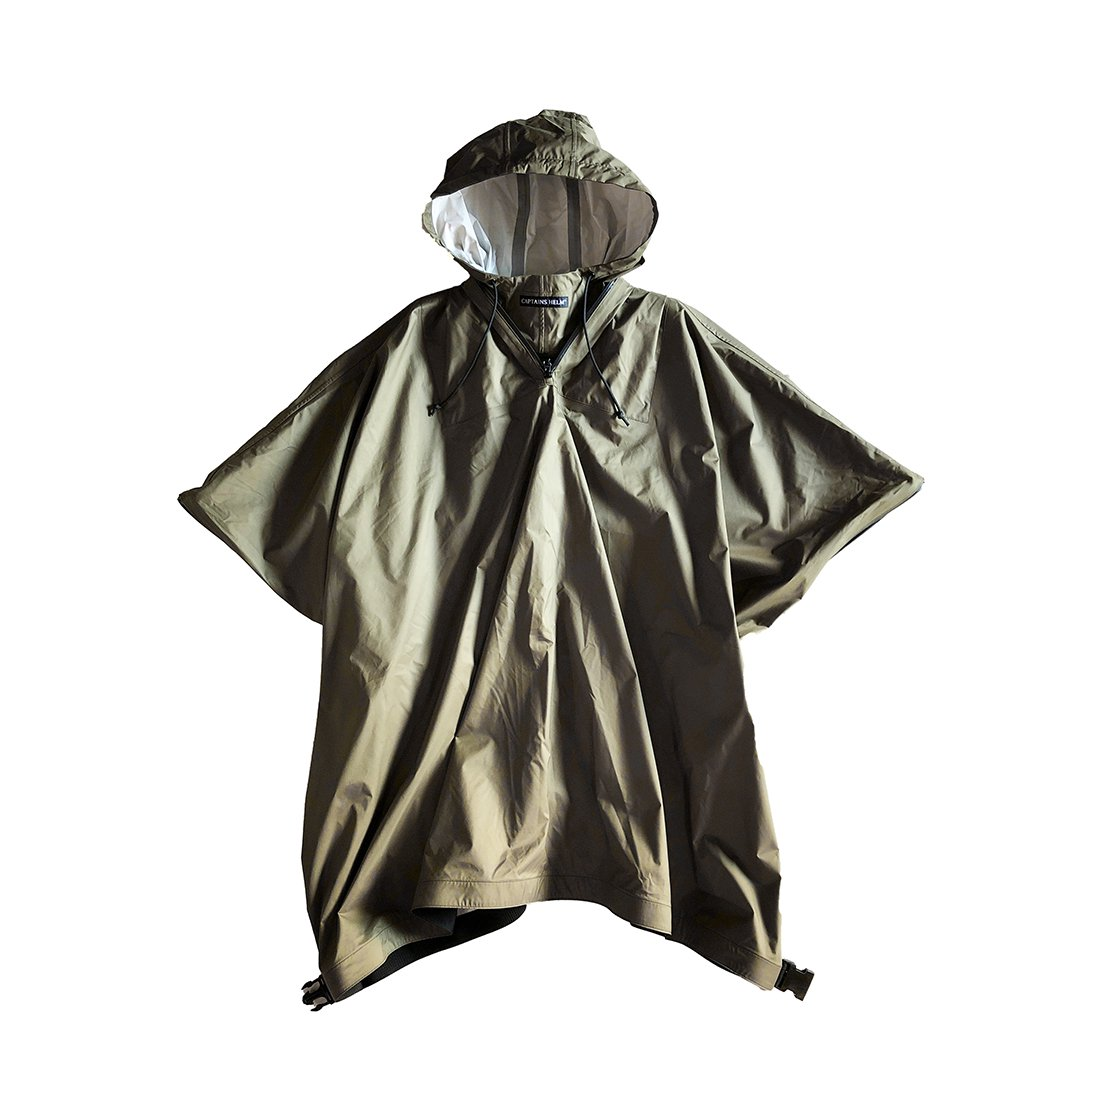 【受注生産ITEM】CAPTAINS HELM #WATER PROOF RAIN PONCHO -OLIVE